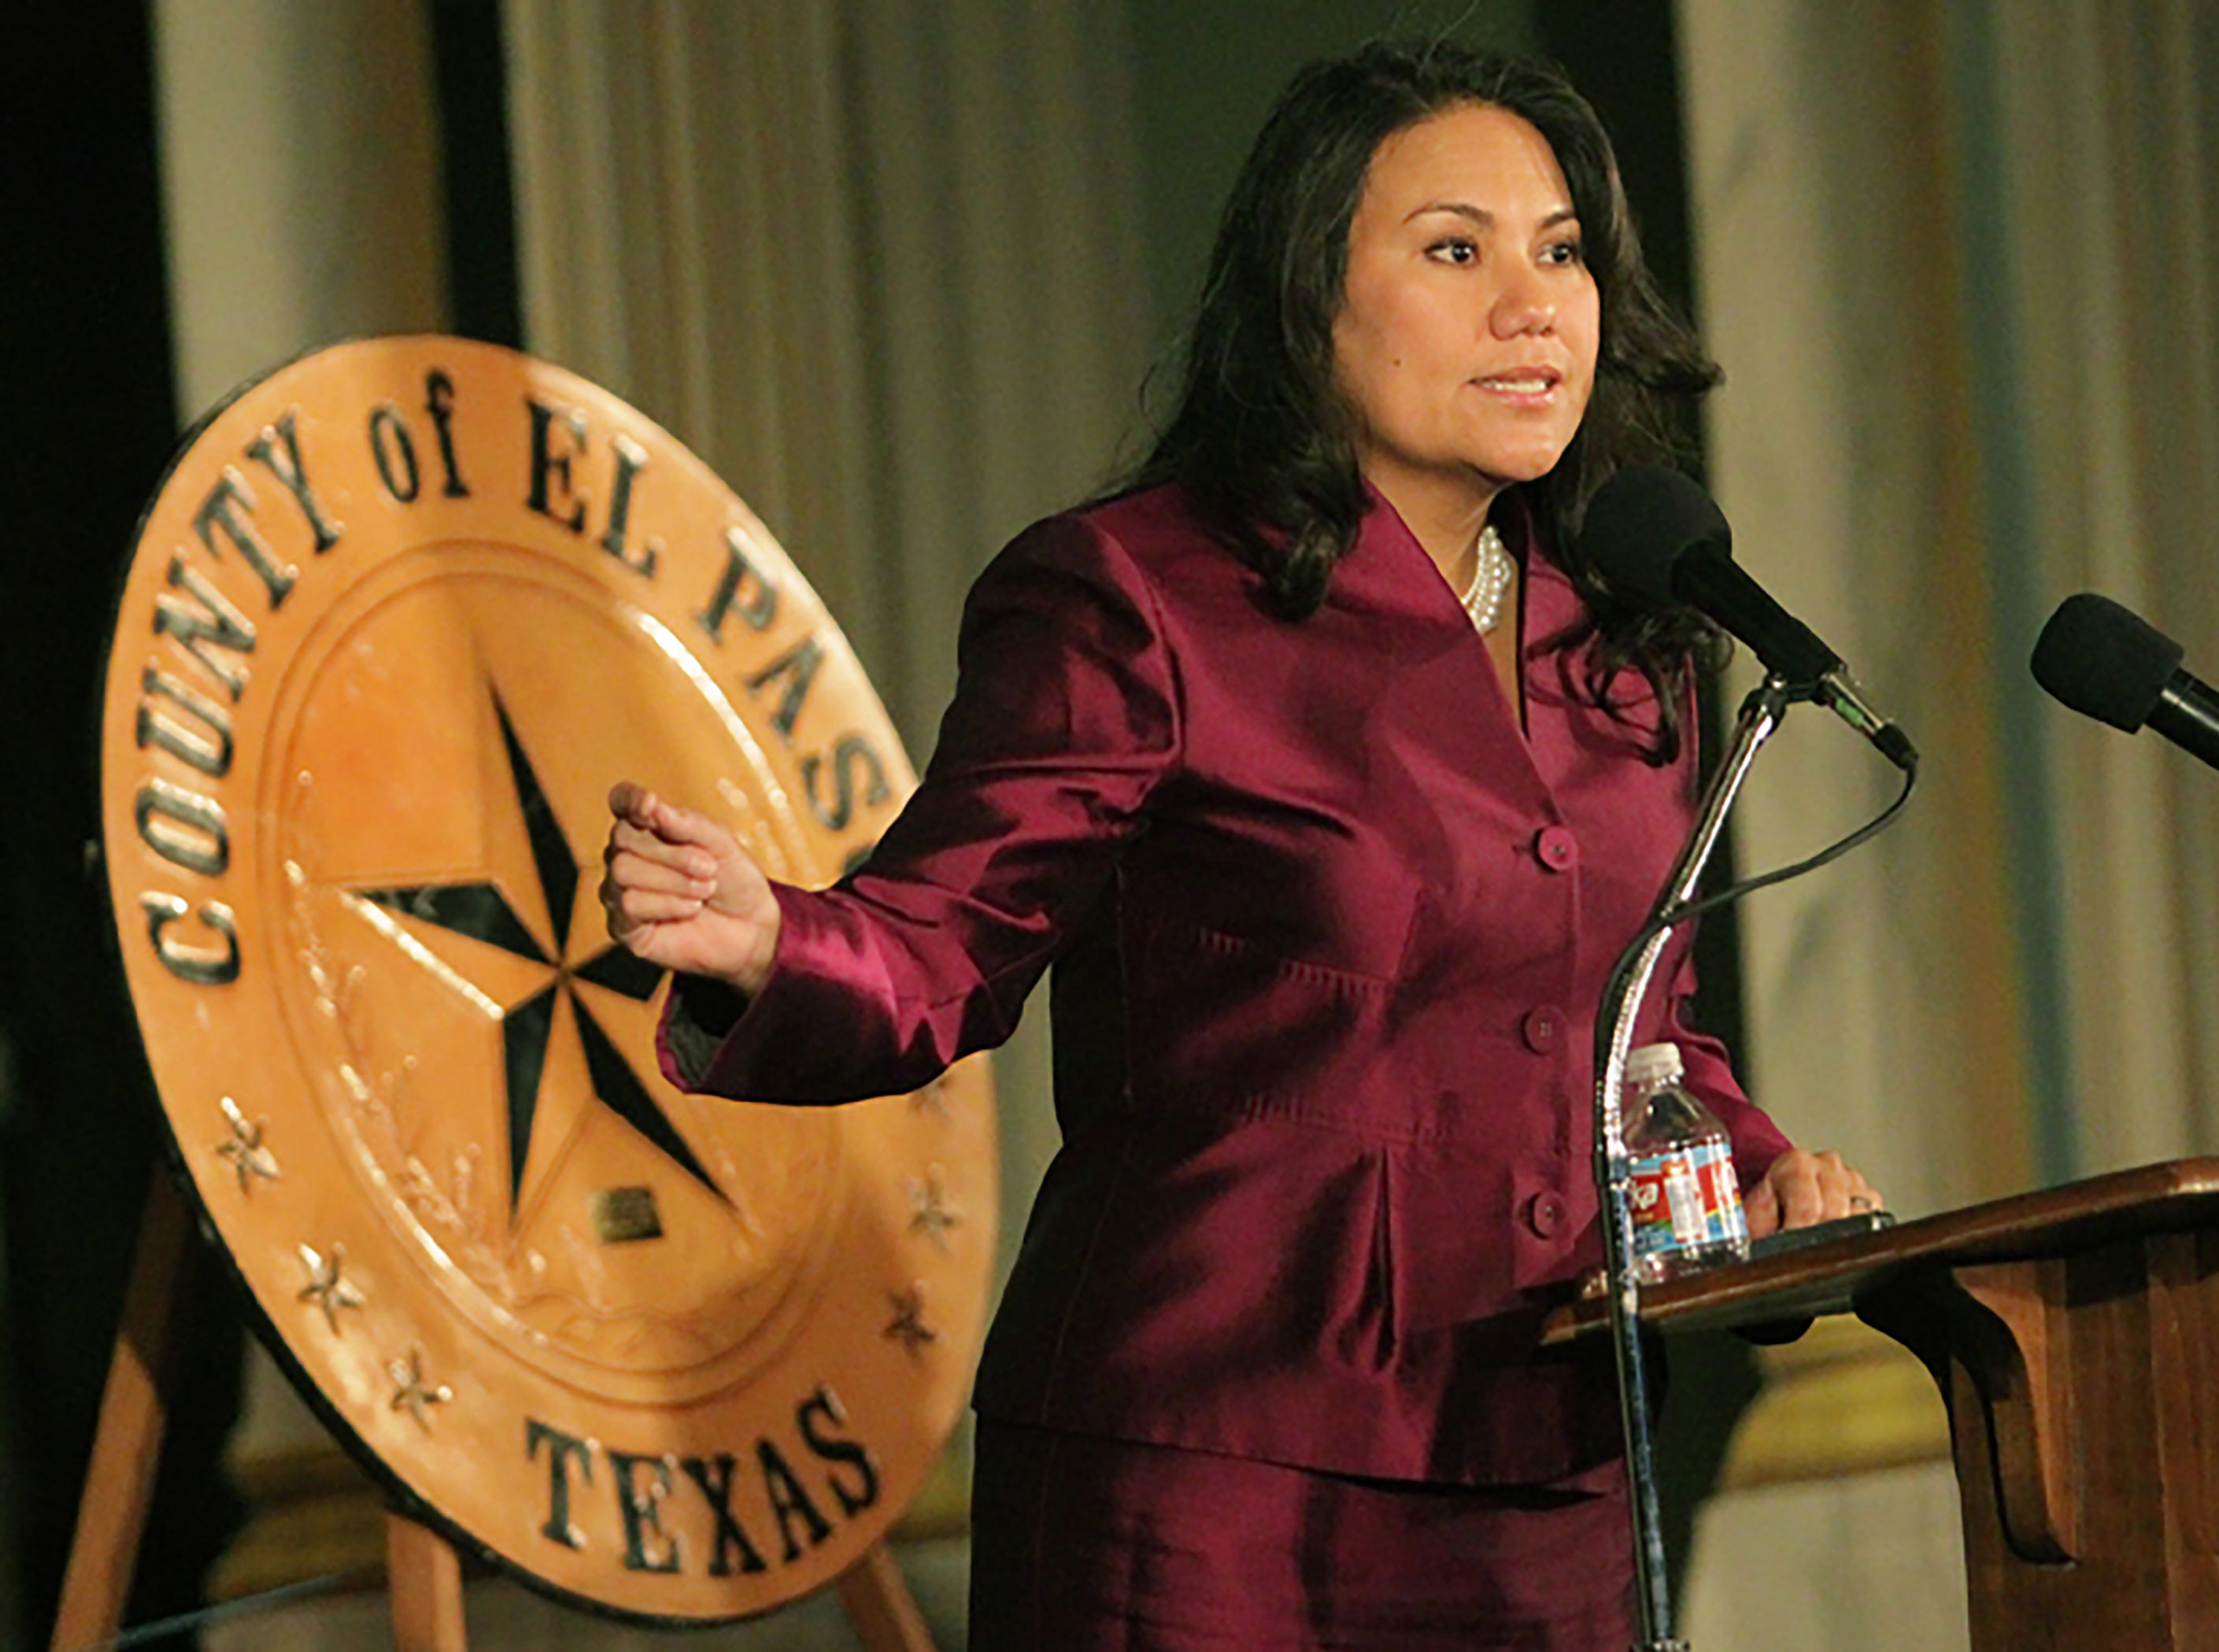 New County Judge Veronica Escobar delivered a speech after taking the oath of office from Judge Ann McClure of the 8th Court of Appeals at the El Paso Scottish Rite Temple in downtown El Paso Saturday.